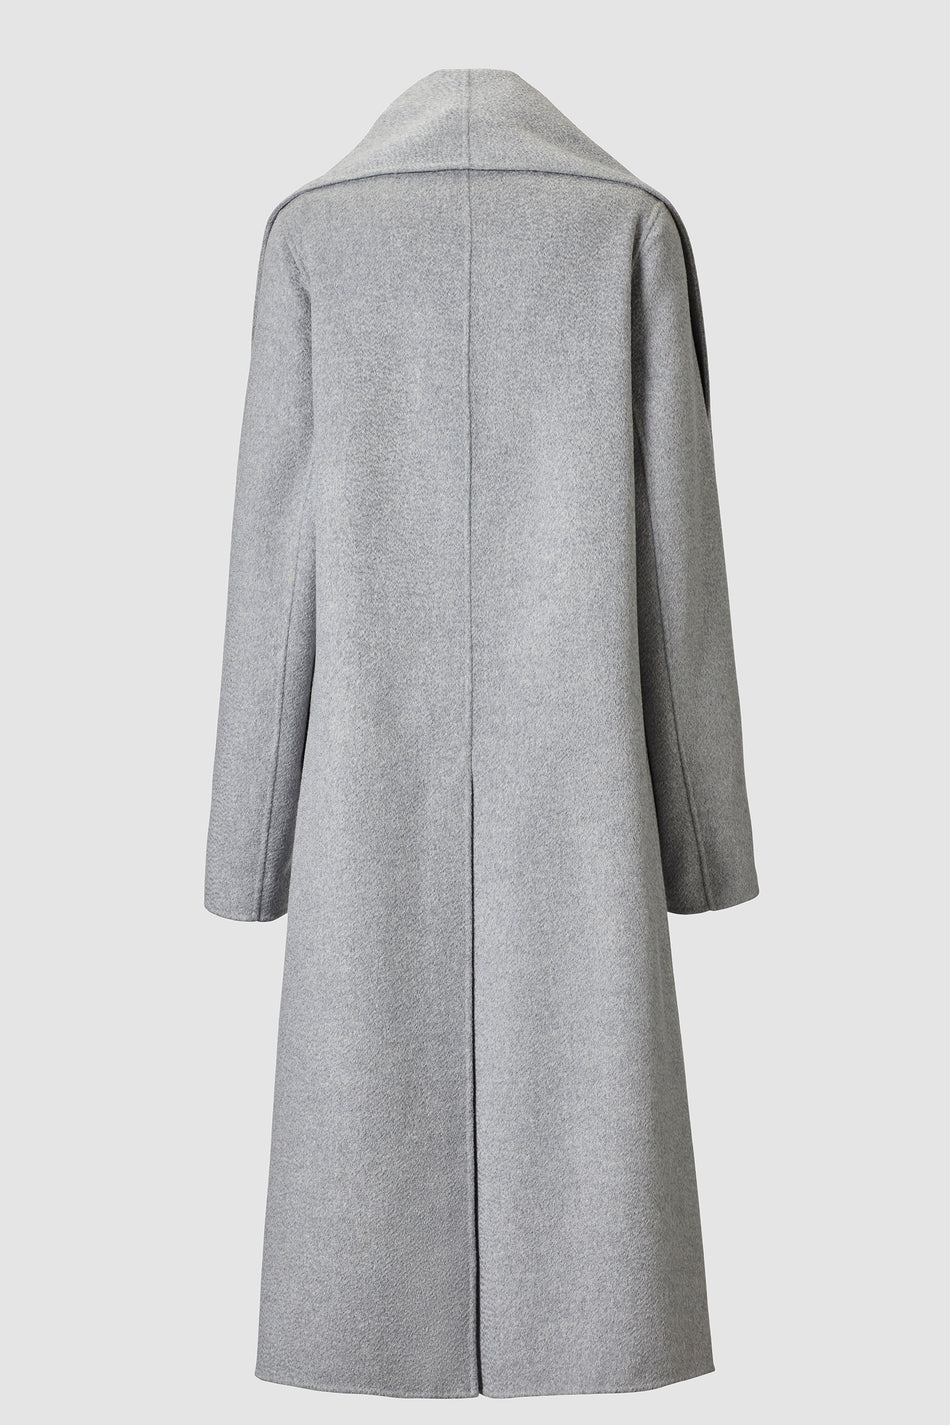 Tove Mio Lambswool Scarf Coat Grey